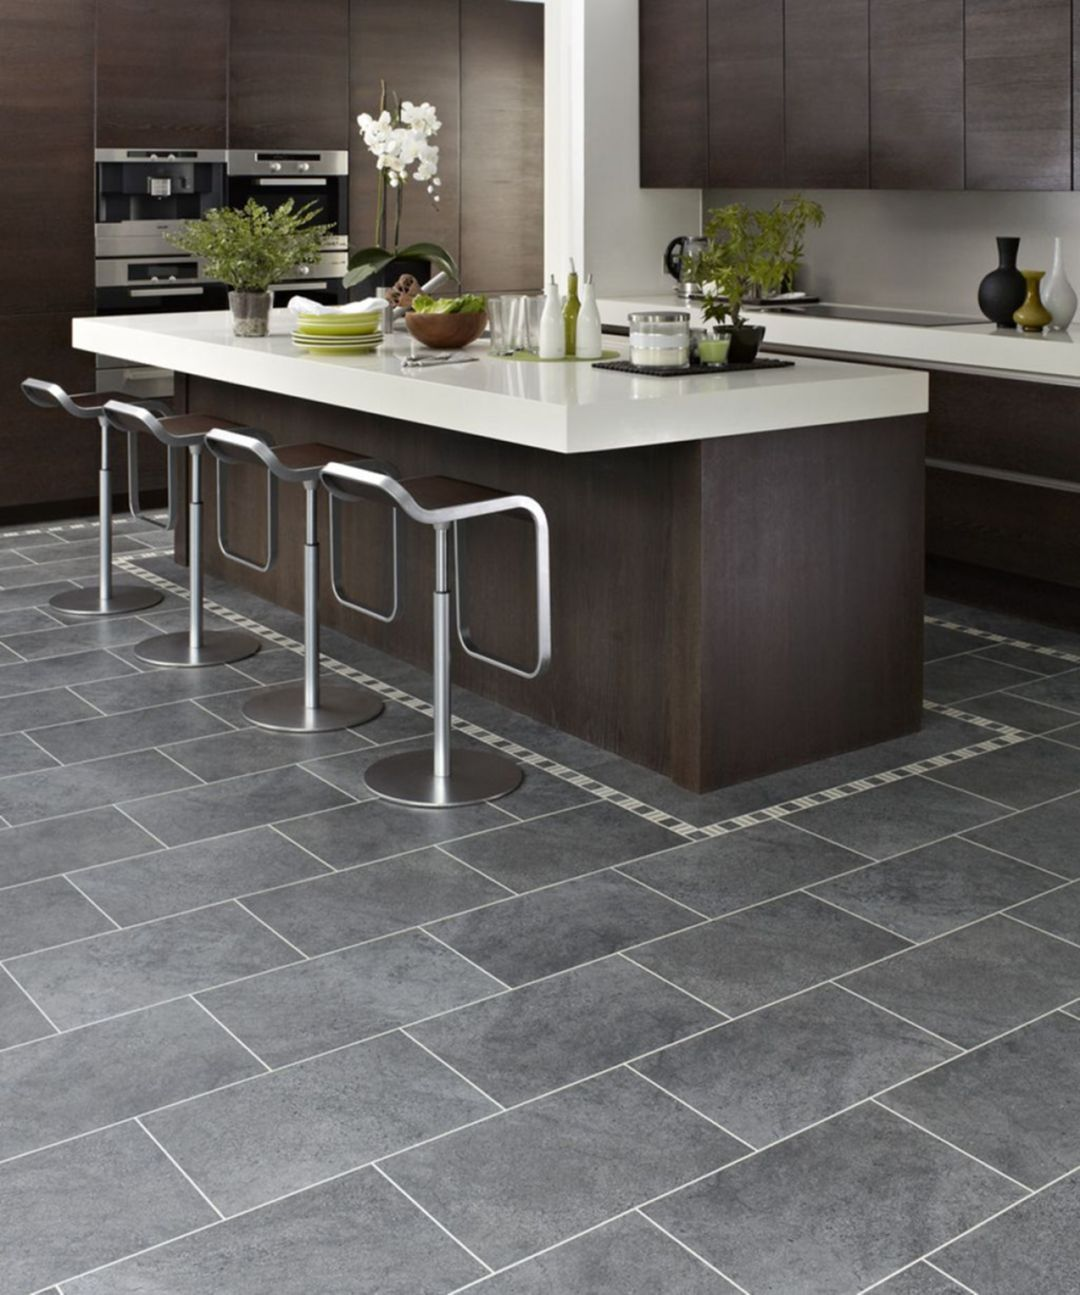 Stone Wood Robus 18x36 Polished Porcelain Tile Kitchen Toronto Cercan Tile Inc Polished Porcelain Tiles Tile Floor Living Room Tile Floor